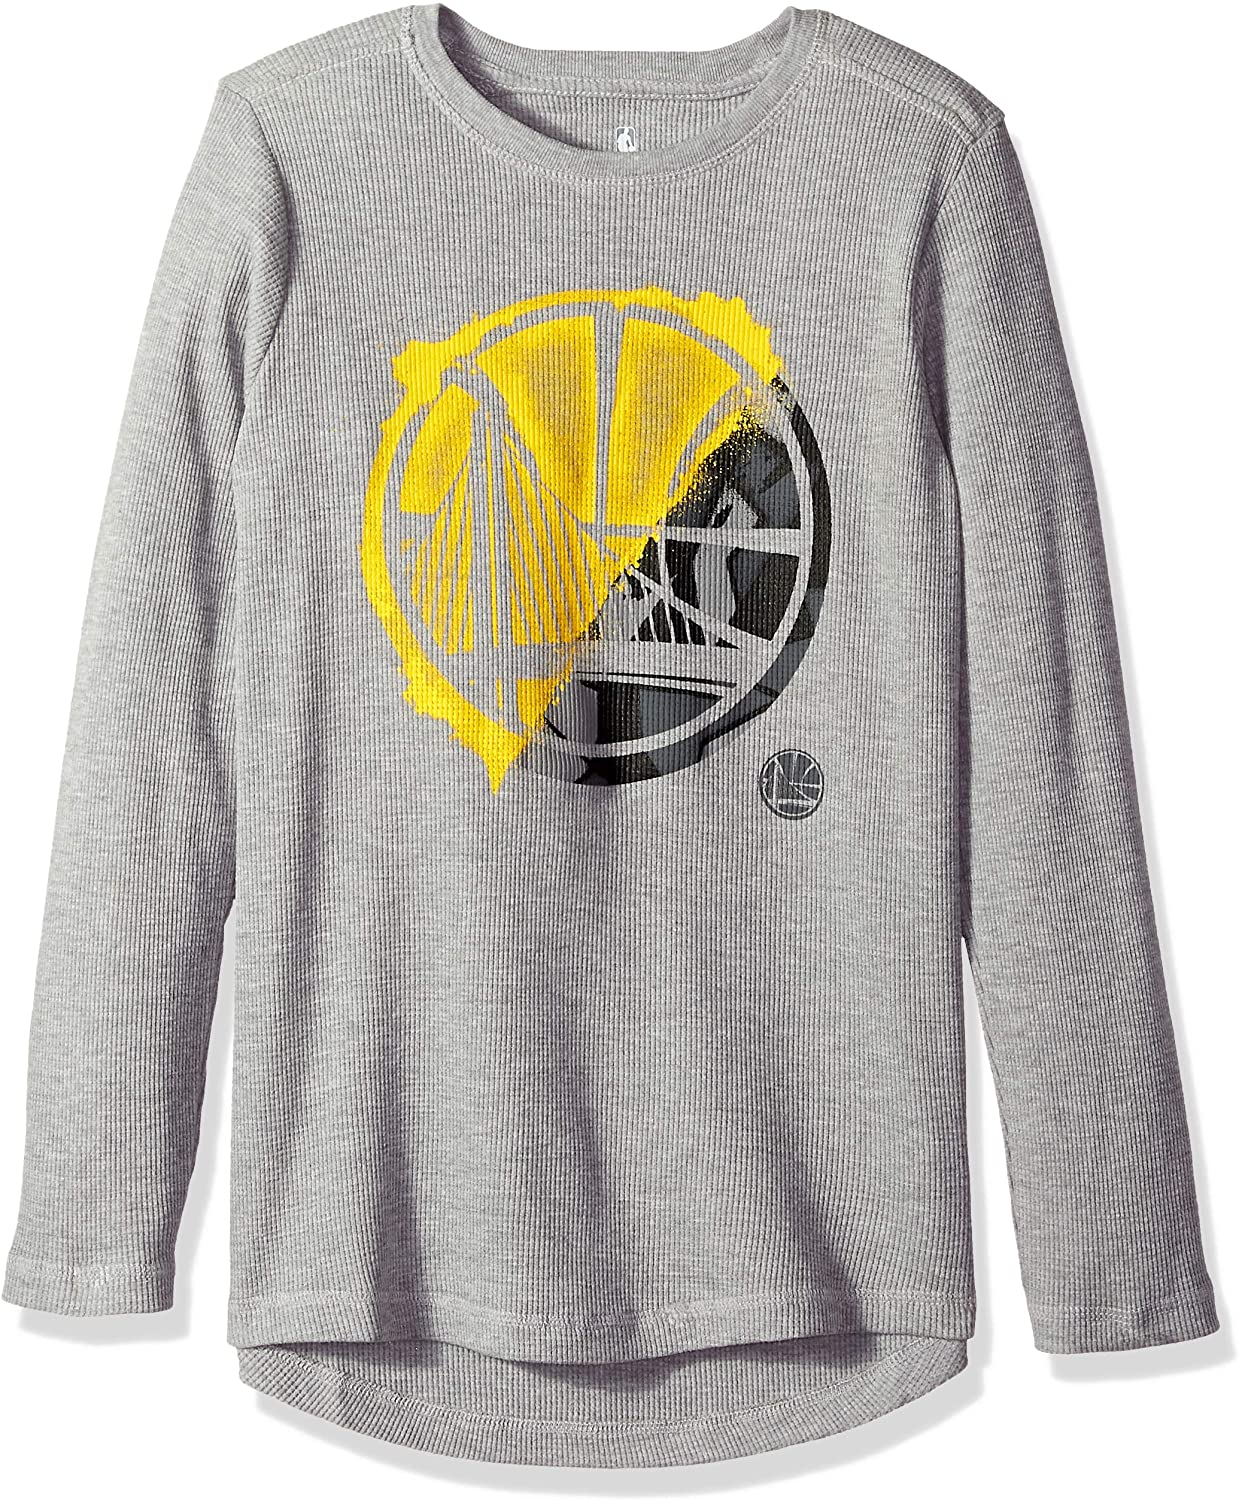 NBA by Outerstuff NBA Youth Boys